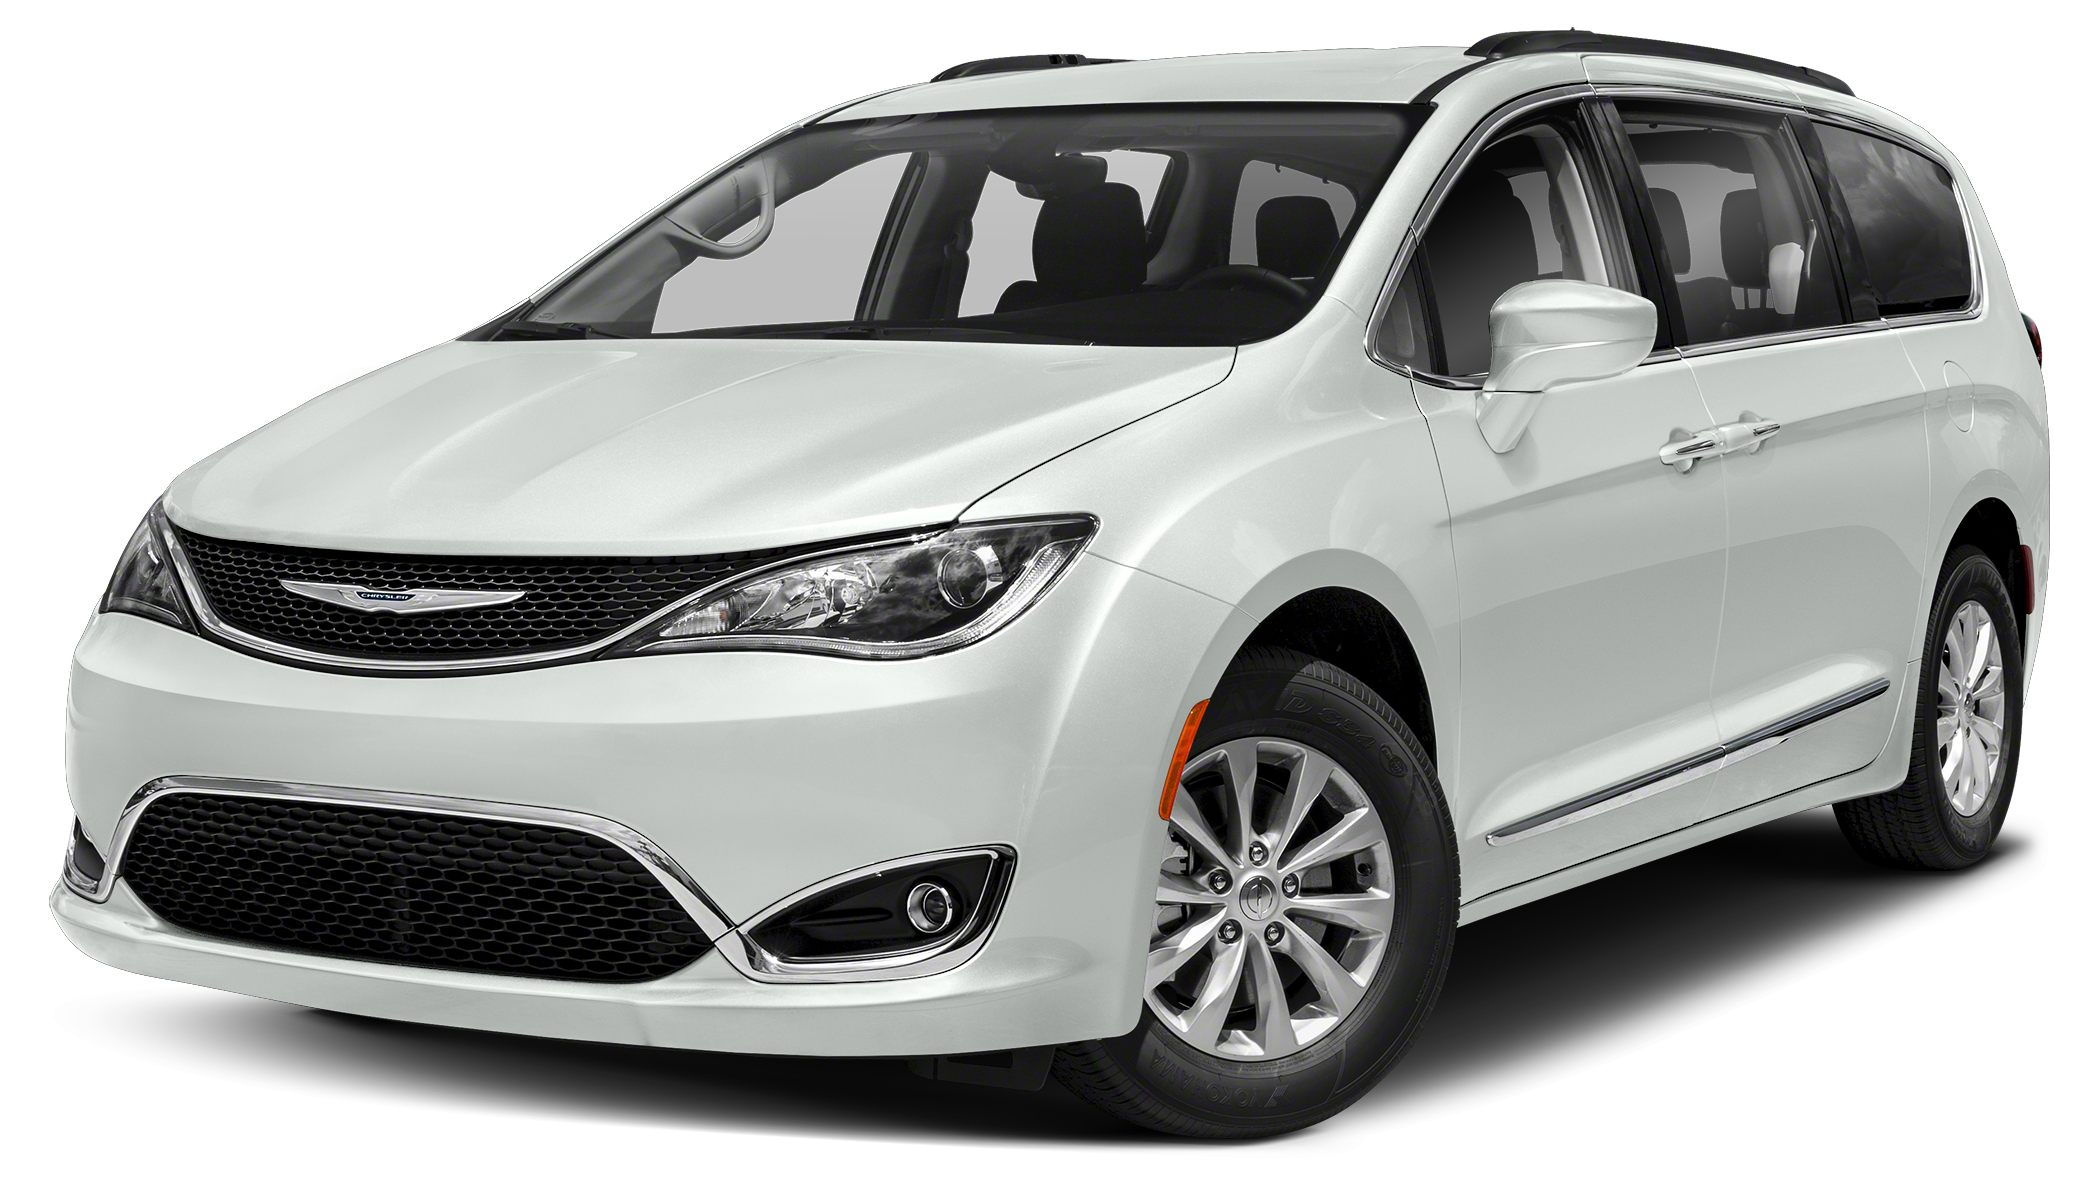 2018 Chrysler Pacifica Touring L The Our Cost Price reflects all applicable manufacturer rebates a